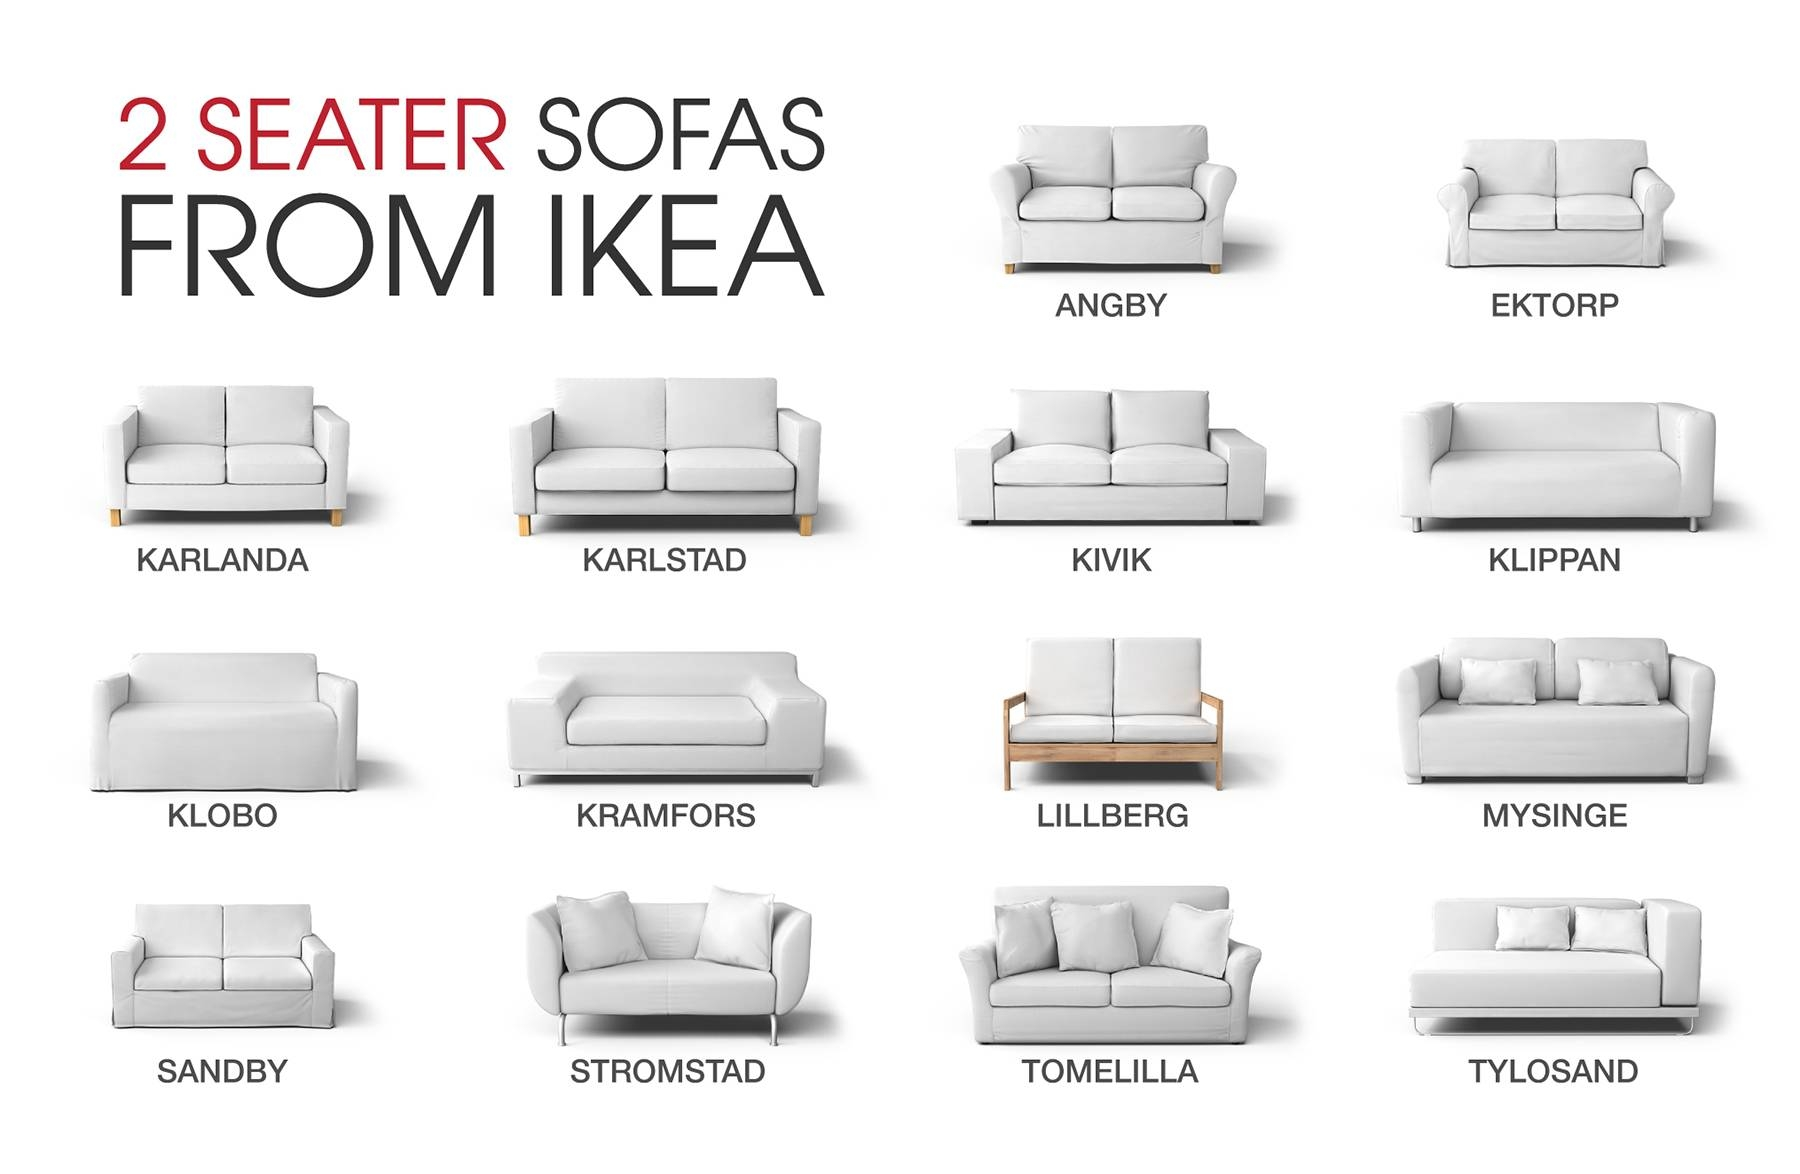 Ikea Sofa Covers For Discontinued Ikea Couch Models intended for Ikea Two Seater Sofas (Image 11 of 30)